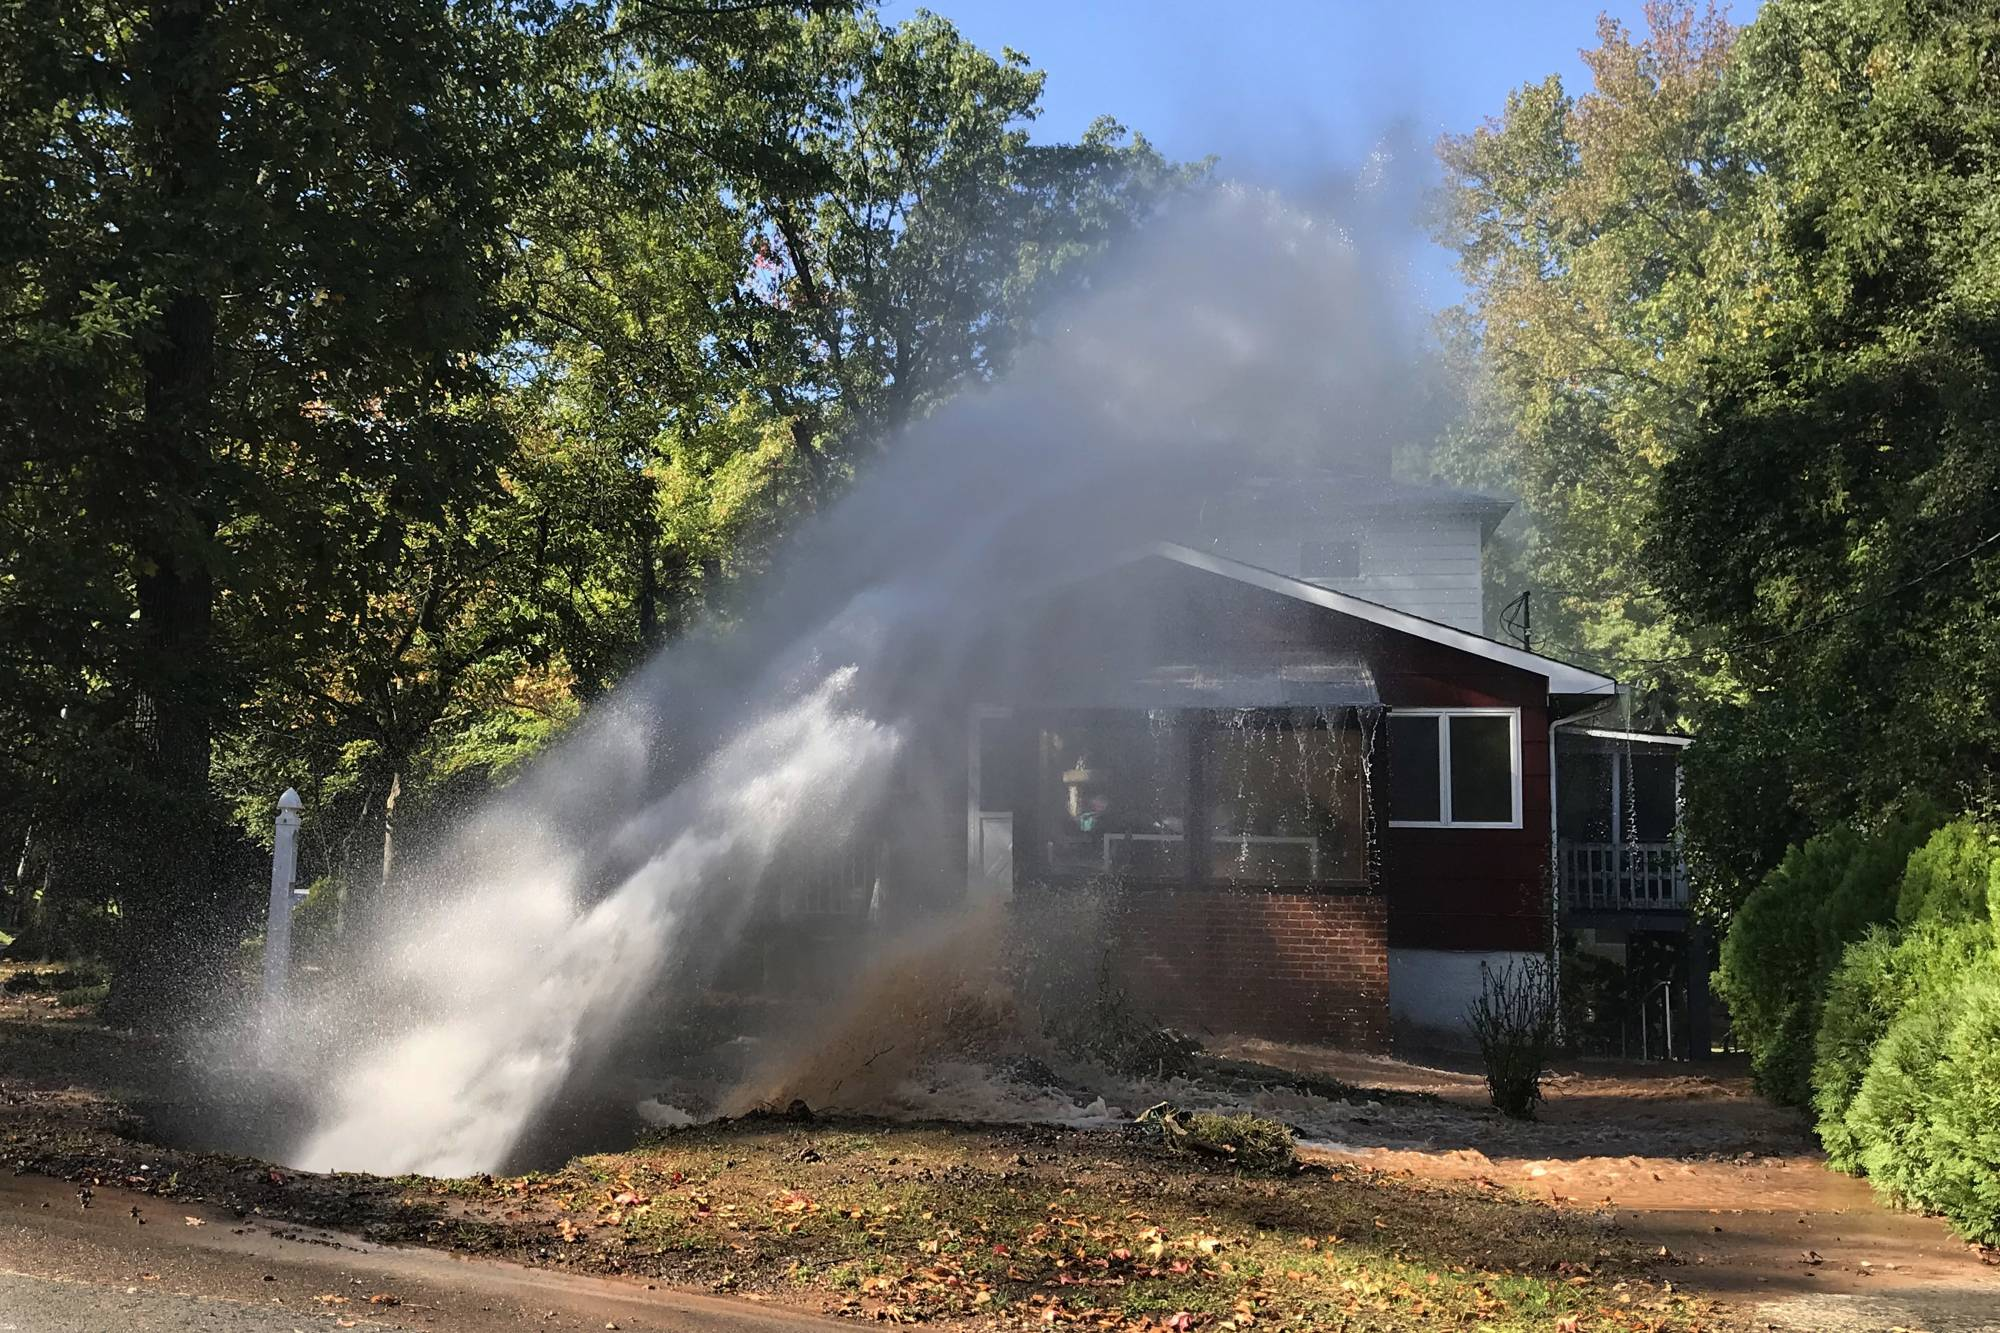 NYC water main breaks, sending geyser blasting onto house